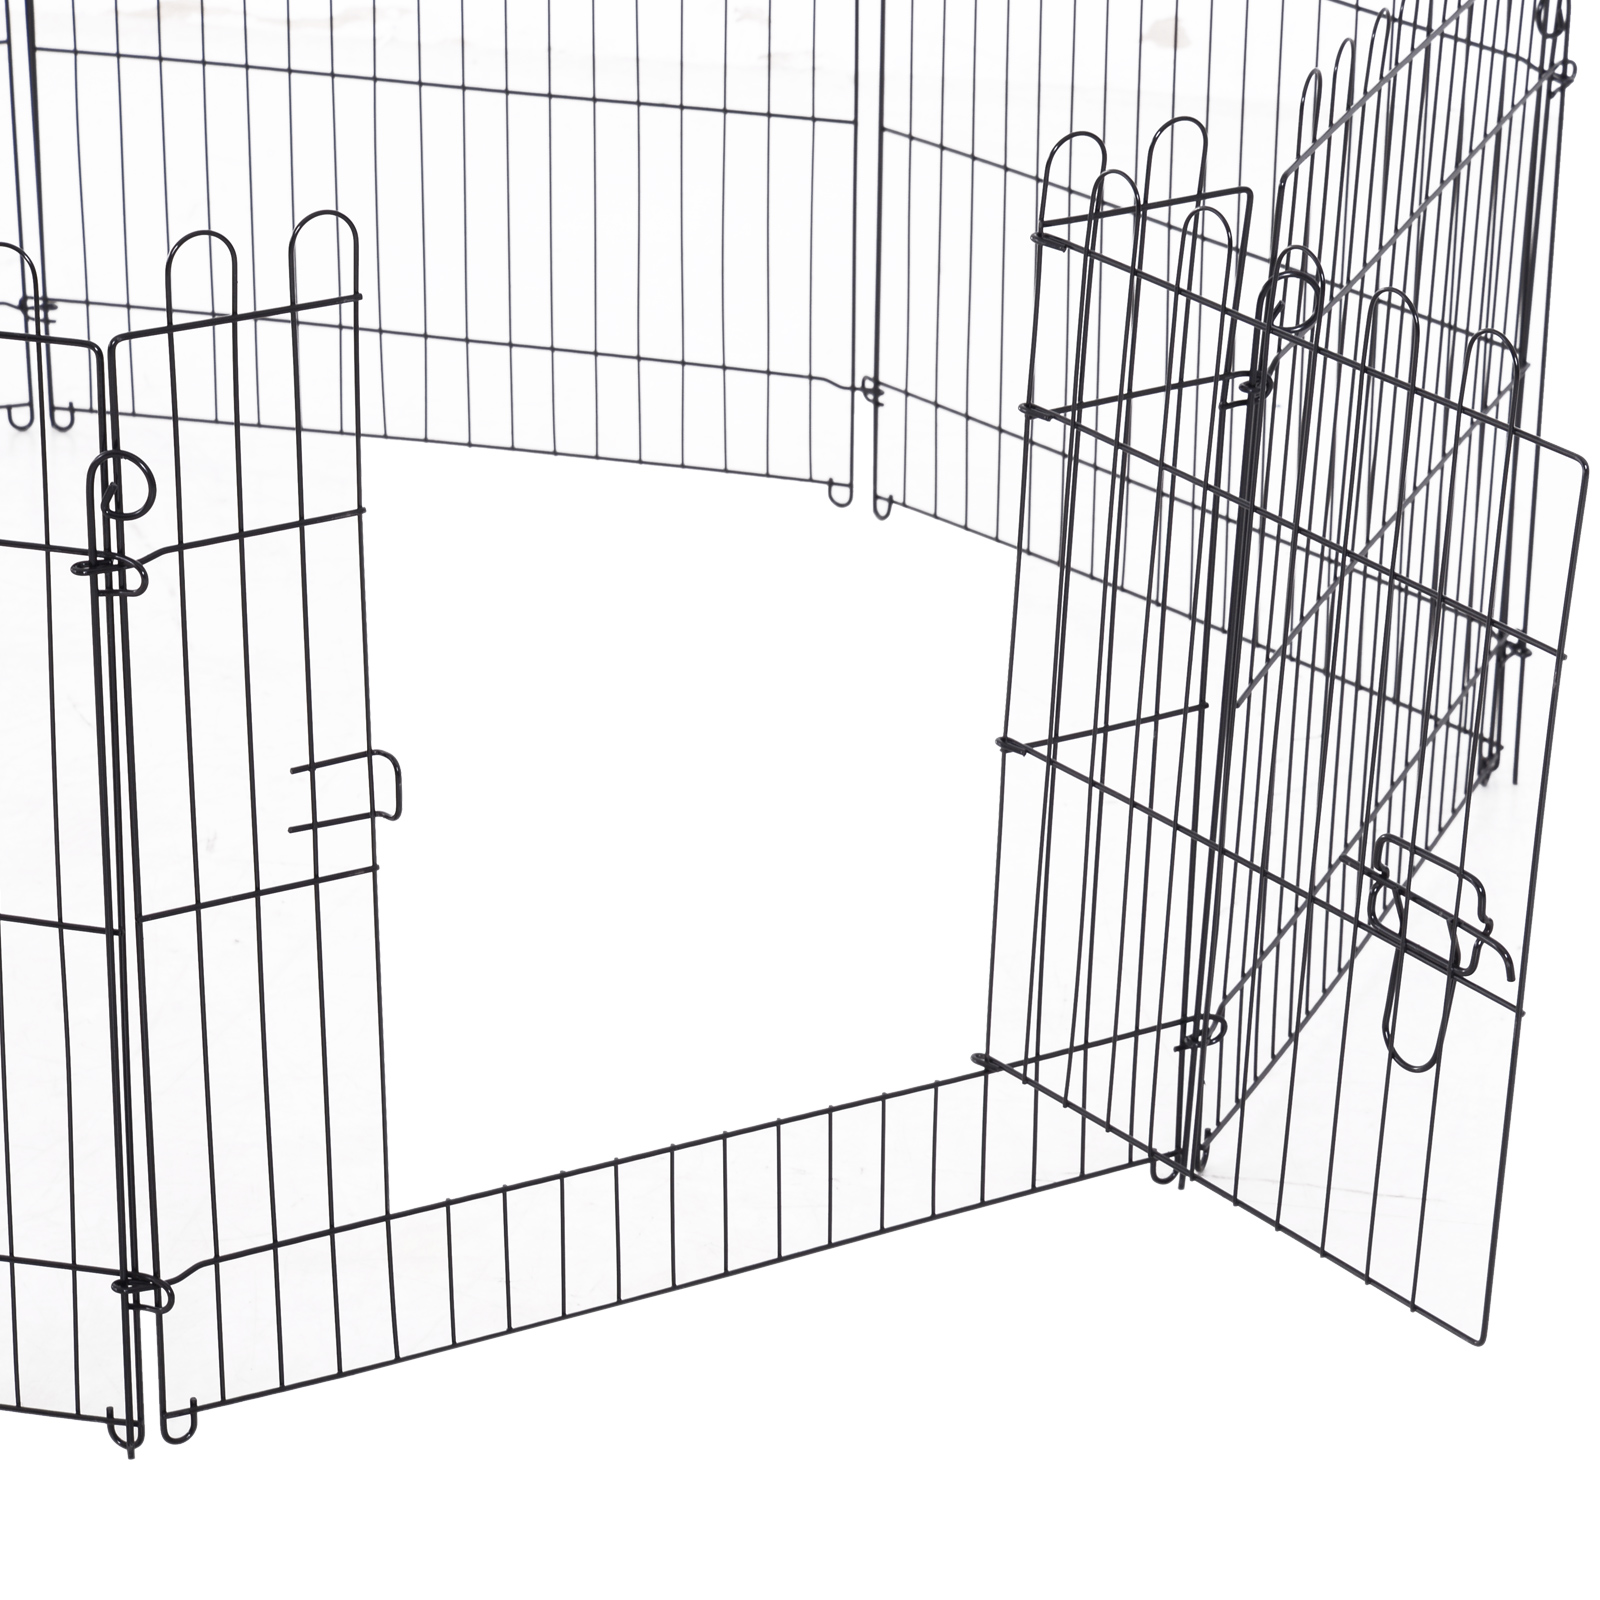 8-Panel-Metal-Pet-Playpen-Dog-Puppy-Cat-Rabbit-Exercise-Fence-Yard-Kennel thumbnail 8